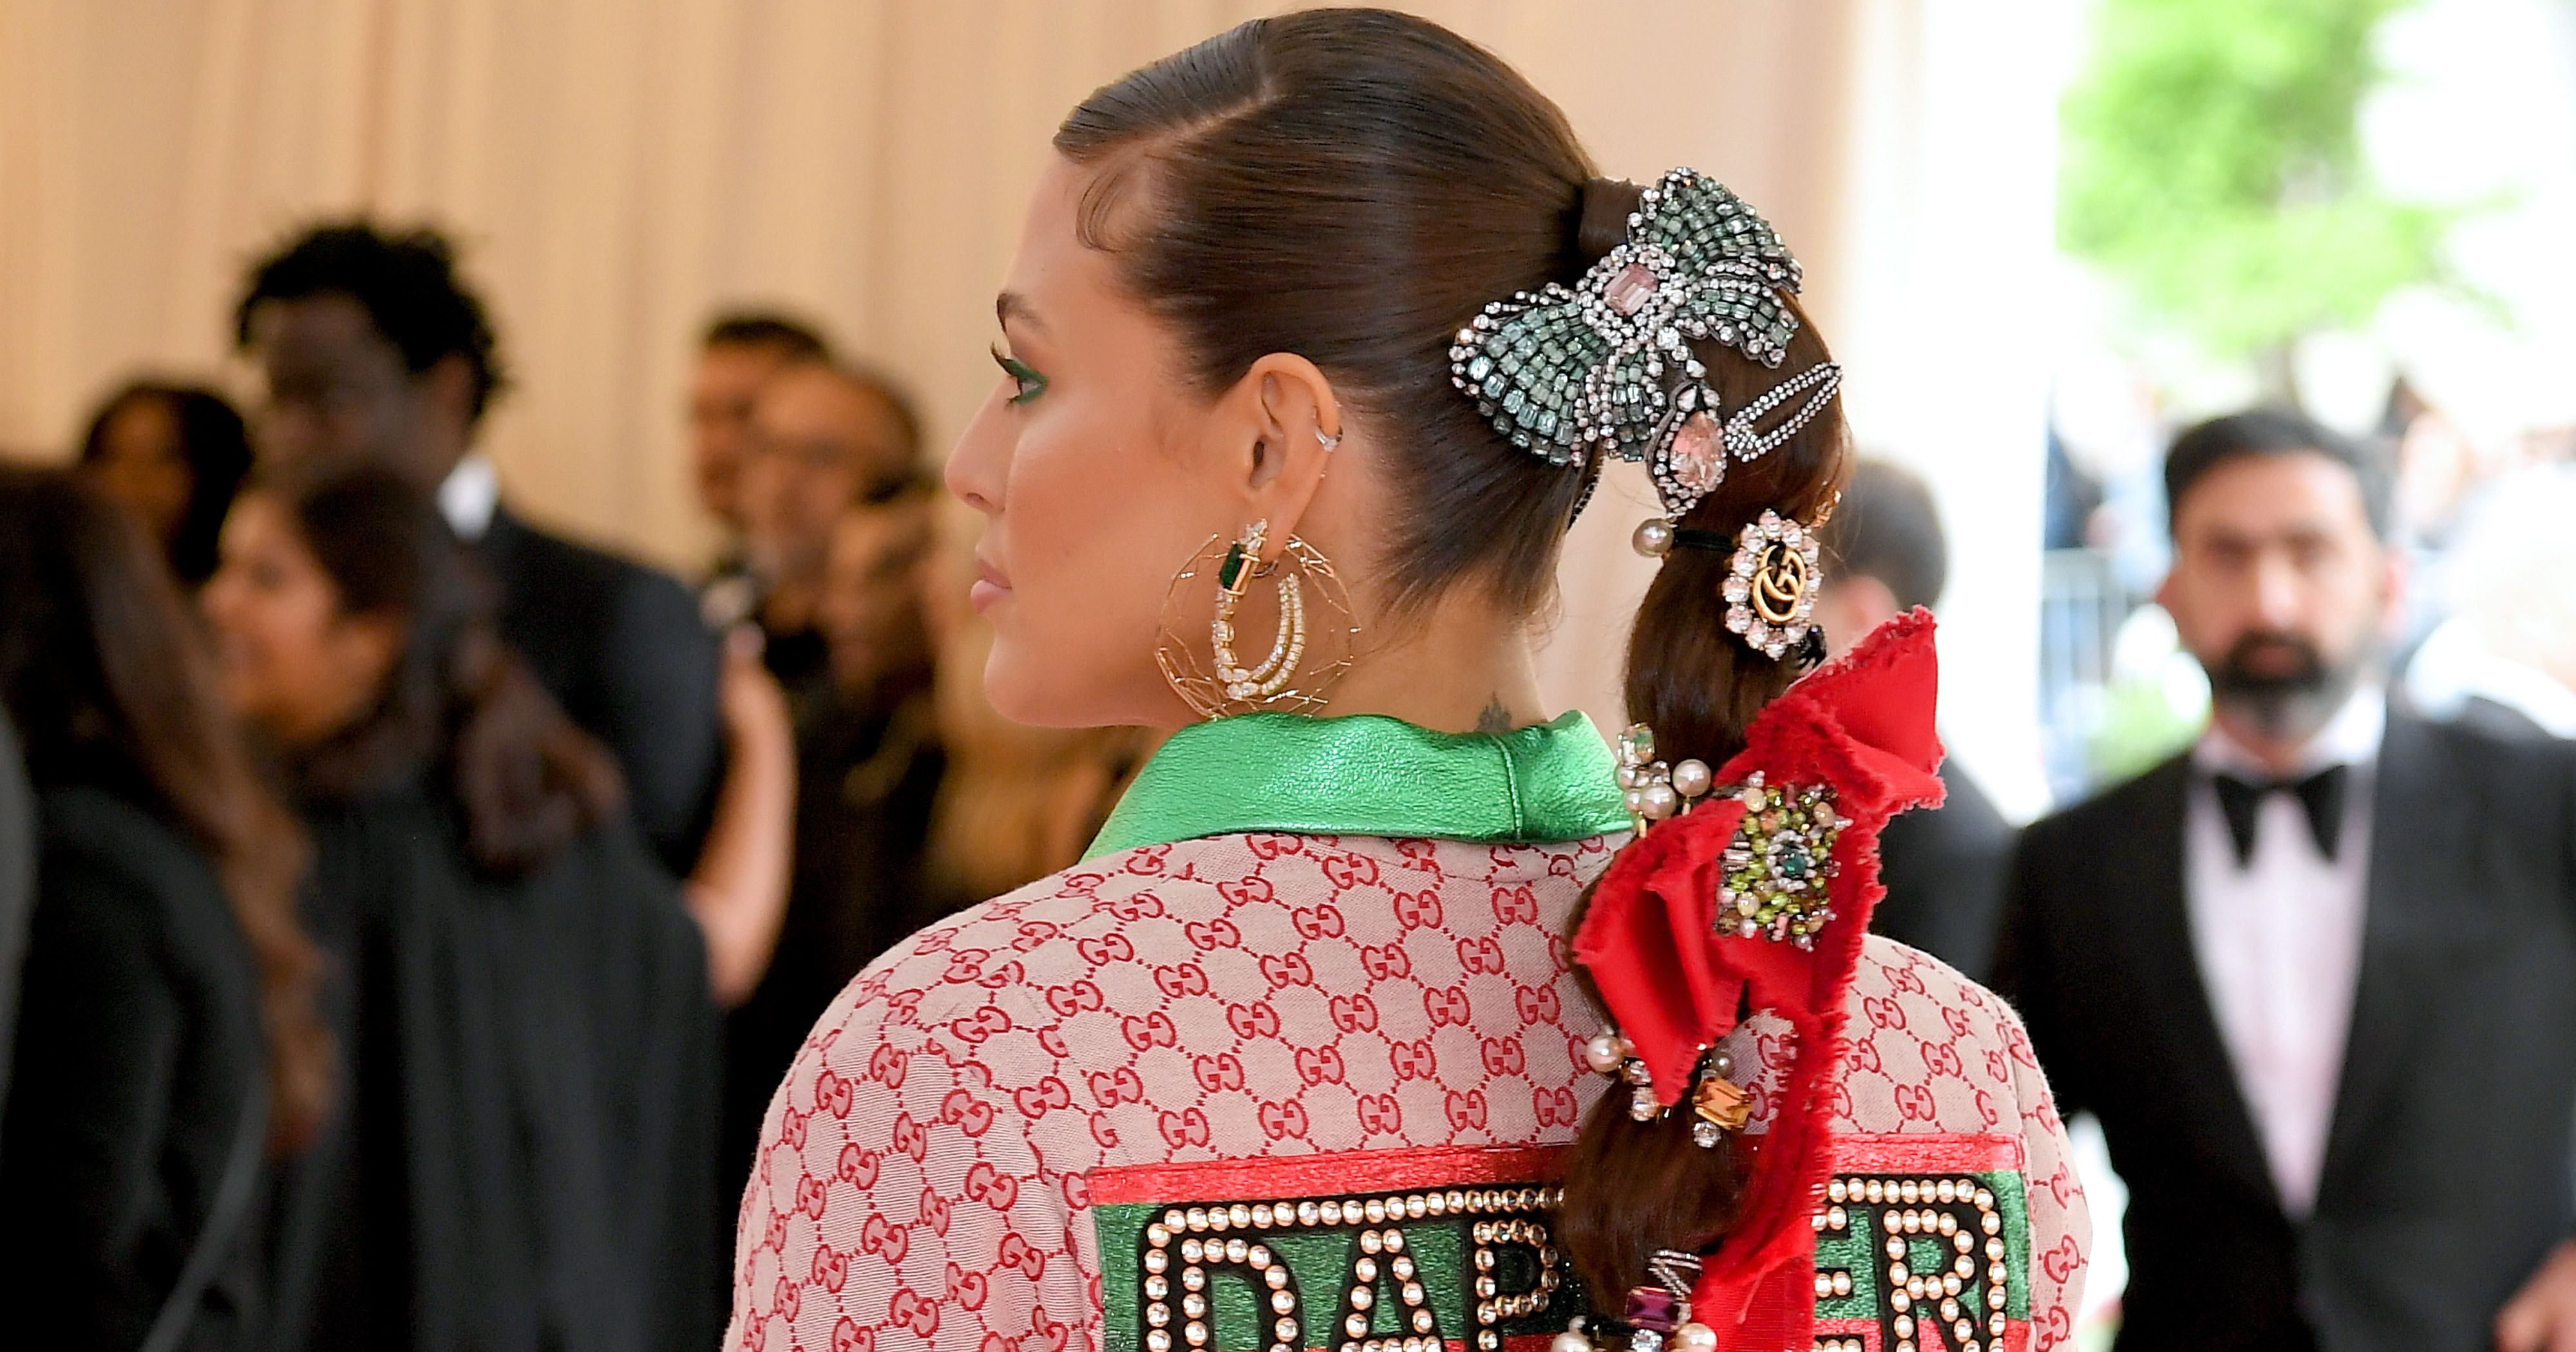 Bows are the 2019 Met Gala's biggest red carpet trend, and they're giving us so much nostalgia